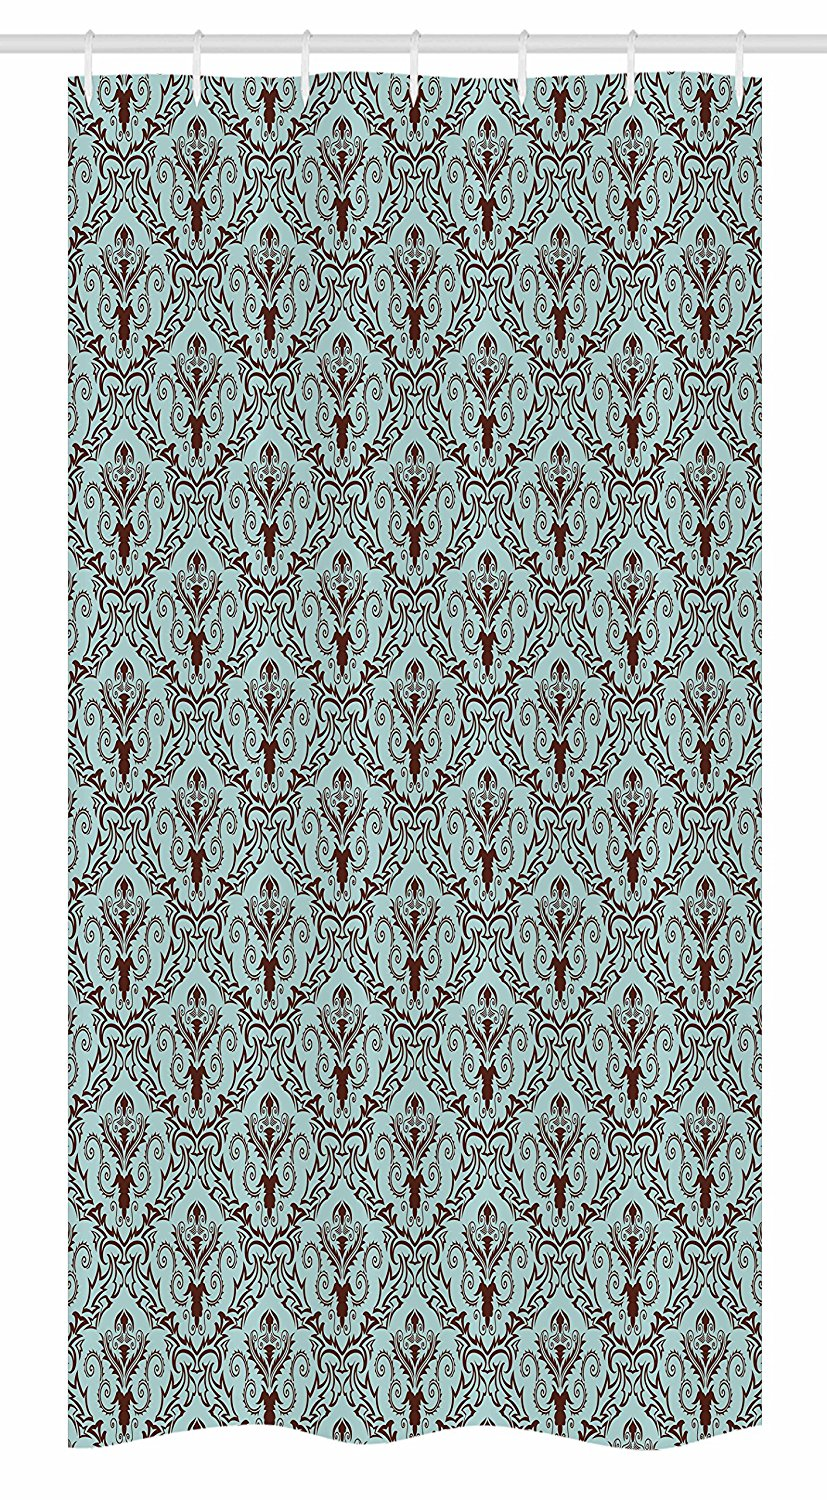 Ambesonne Damask Stall Shower Curtain by, Classic Design Style Leaves Foliage with Damask Pattern Curvy Lines Ornate, Fabric Bathroom Decor Set with Hooks, 36 W x 72 L Inches, Turquoise Brown